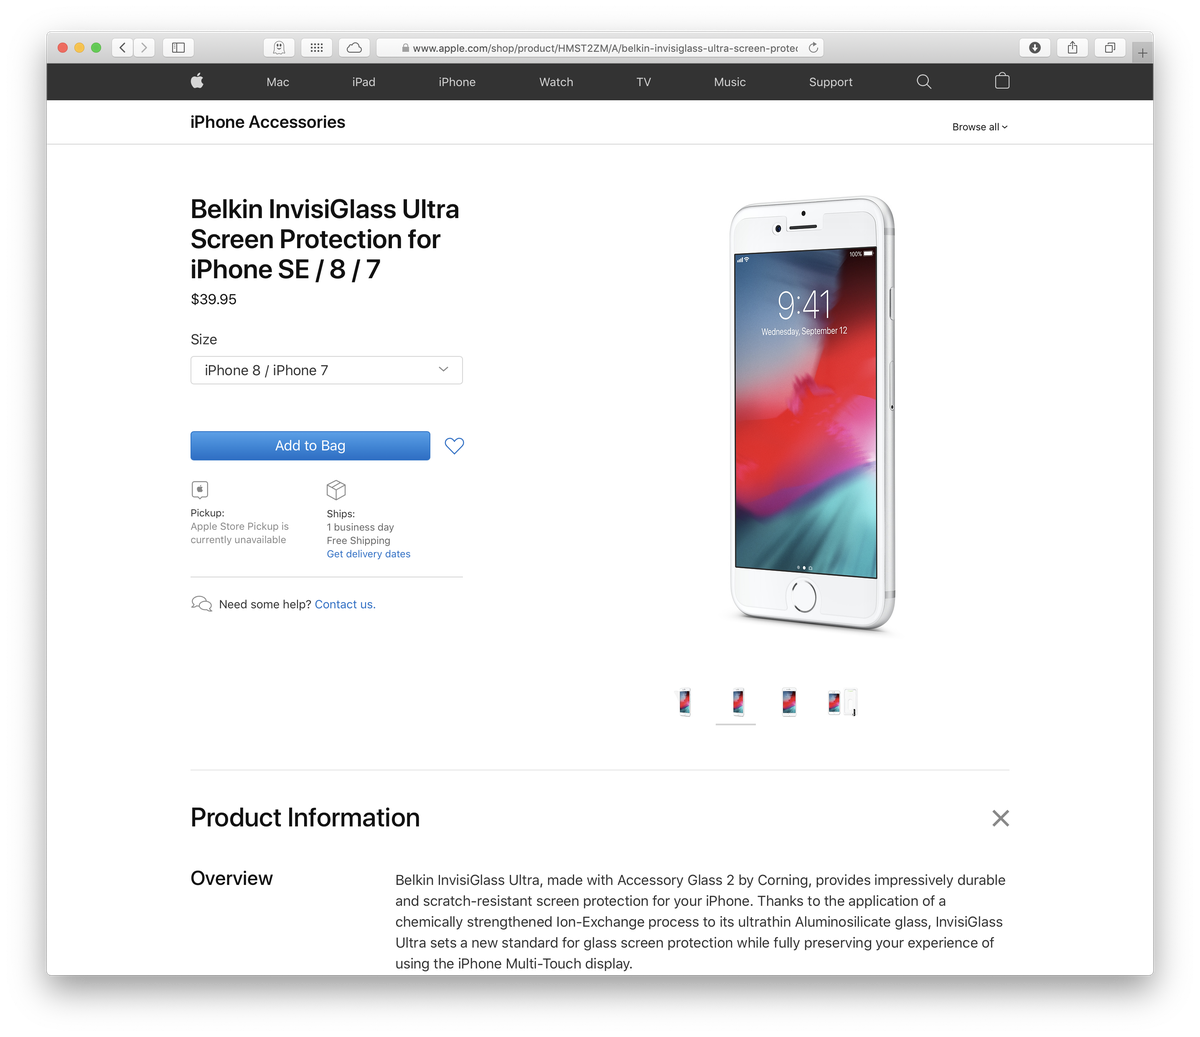 Apple Store leaks 4.7-inch 'iPhone SE' name - The Verge